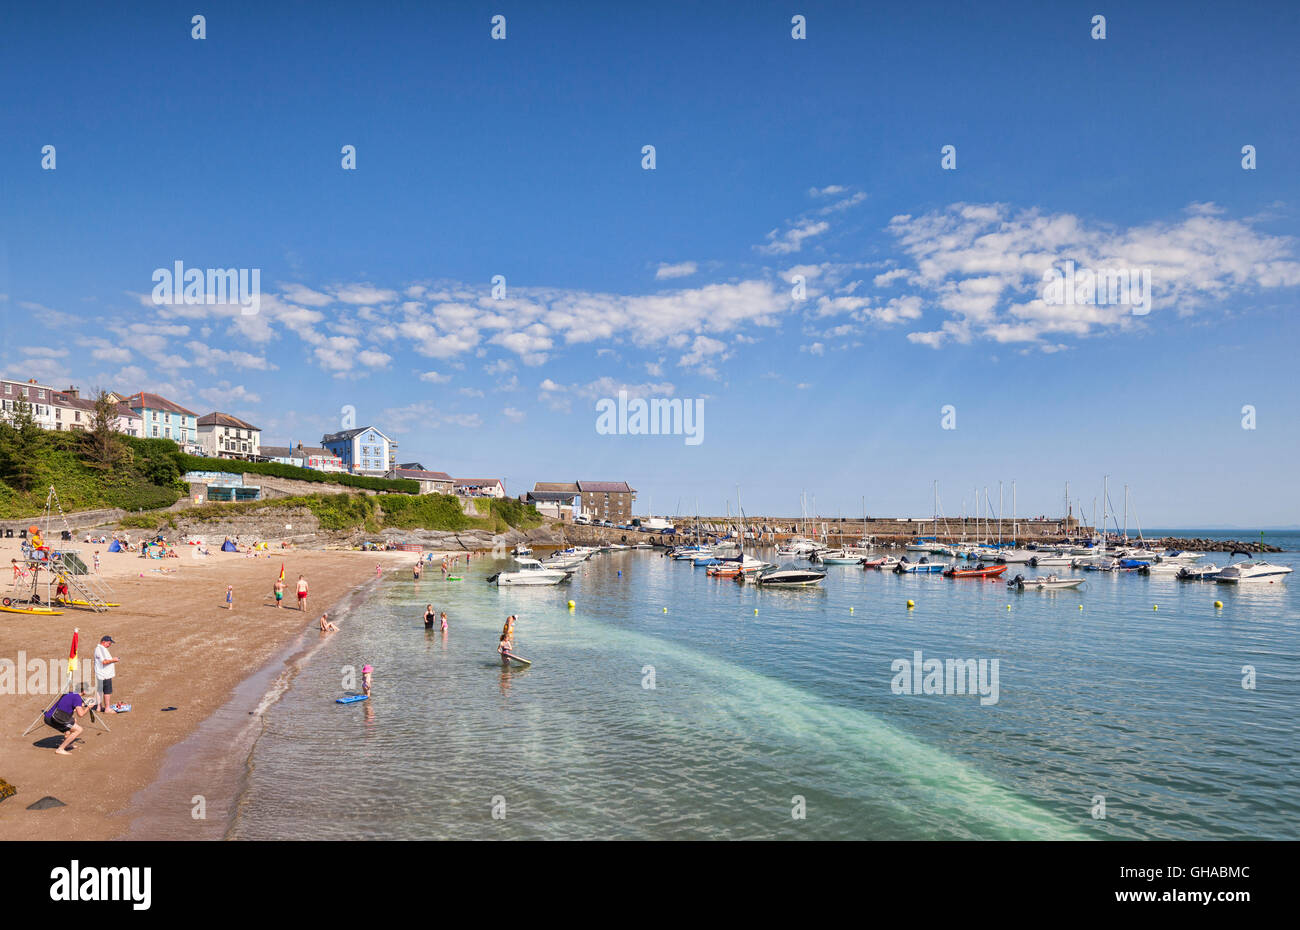 Hot summer day at South Beach, New Quay, Ceredigion, Wales, UK - Stock Image